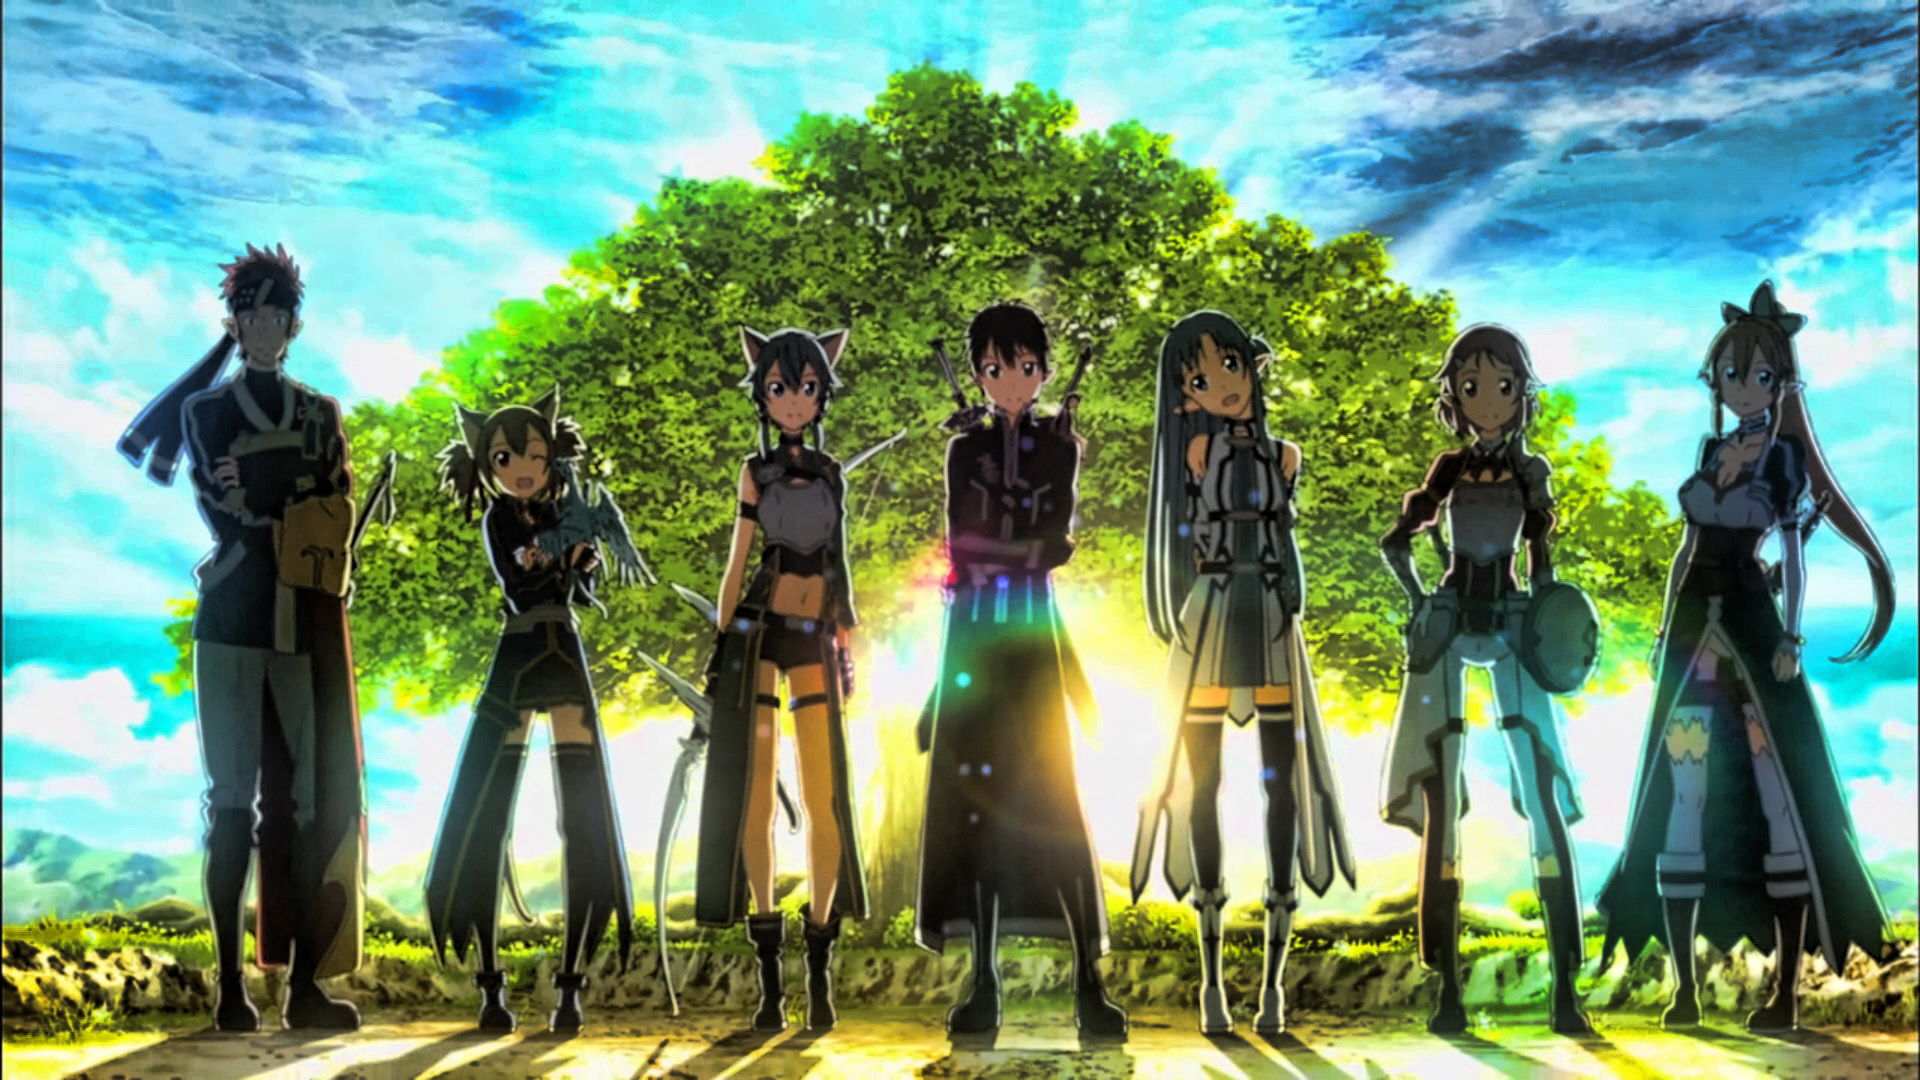 Sao Wallpaper 04 By Sanoboss Watch Customization Other 2014 1920x1080